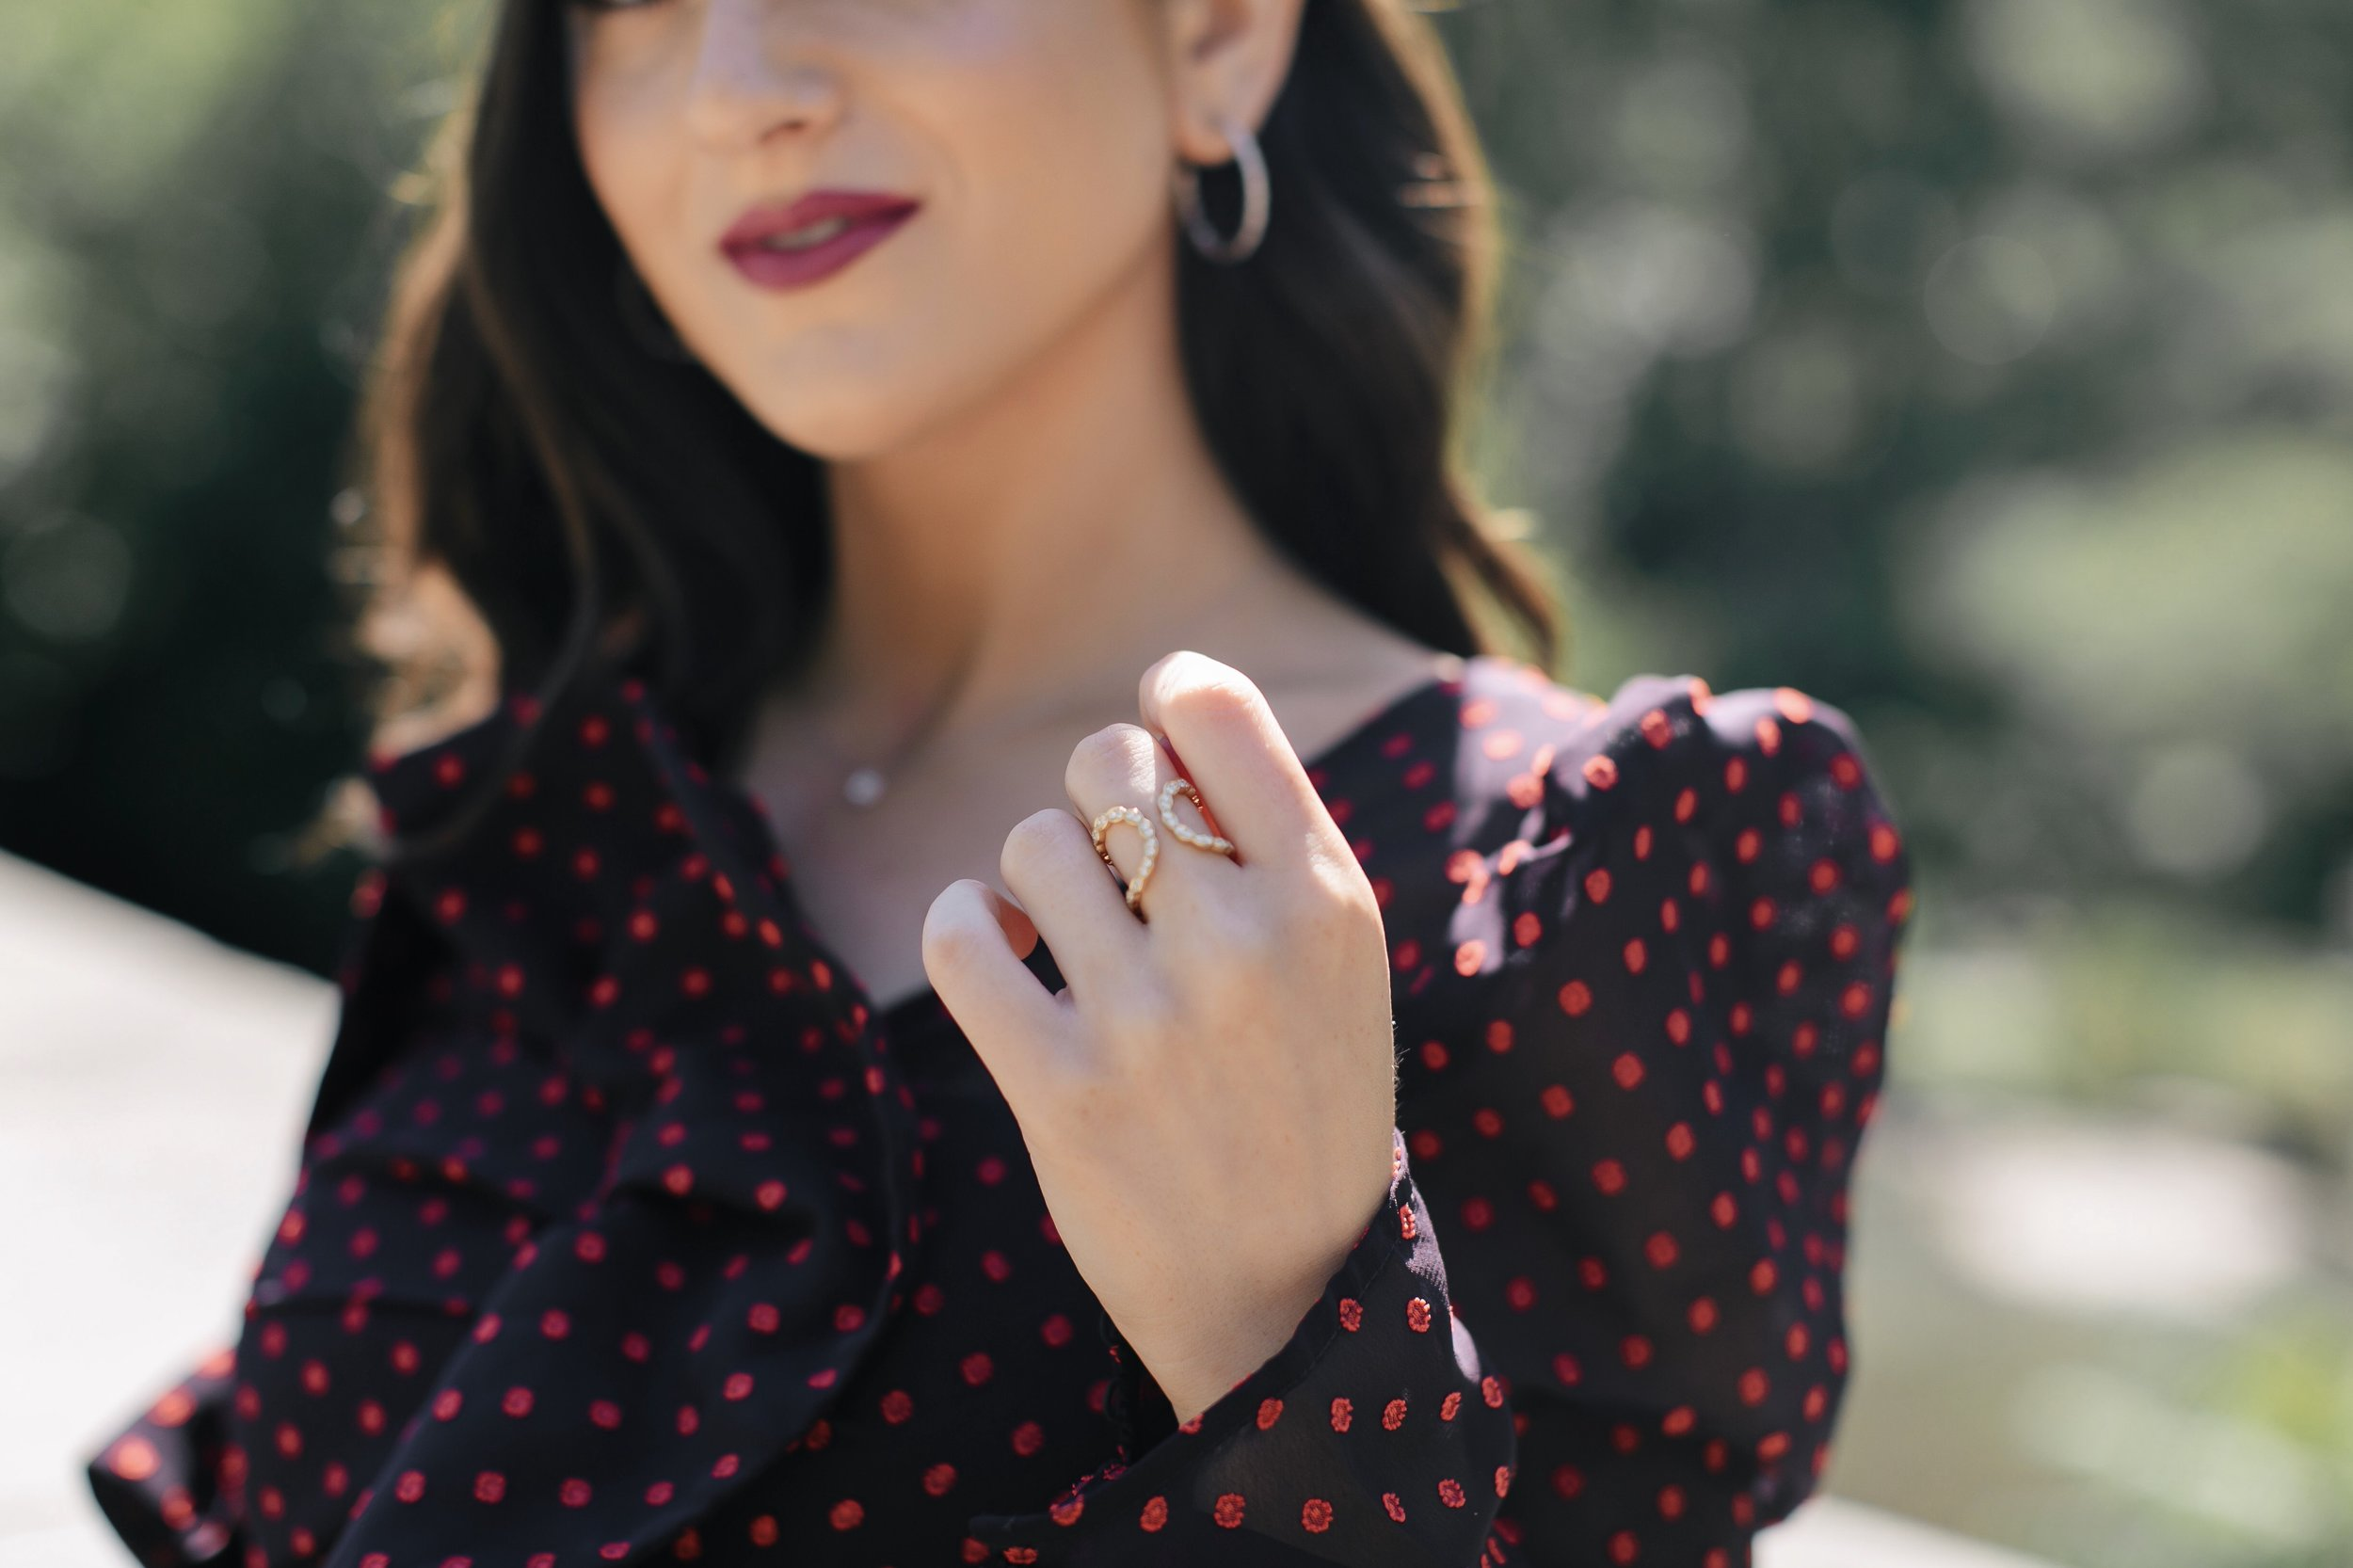 Decked Out In Diamonds Hearts On Fire Esther Santer NYC Street Style Blogger Outfit Self Portrait Necklace Ring Earrings Pretty Beautiful Perfect Cut Outfit Polka Dot Print Photoshoot Central Park New York City Wear Lipstick Women Girl Shopping Luxury.jpg